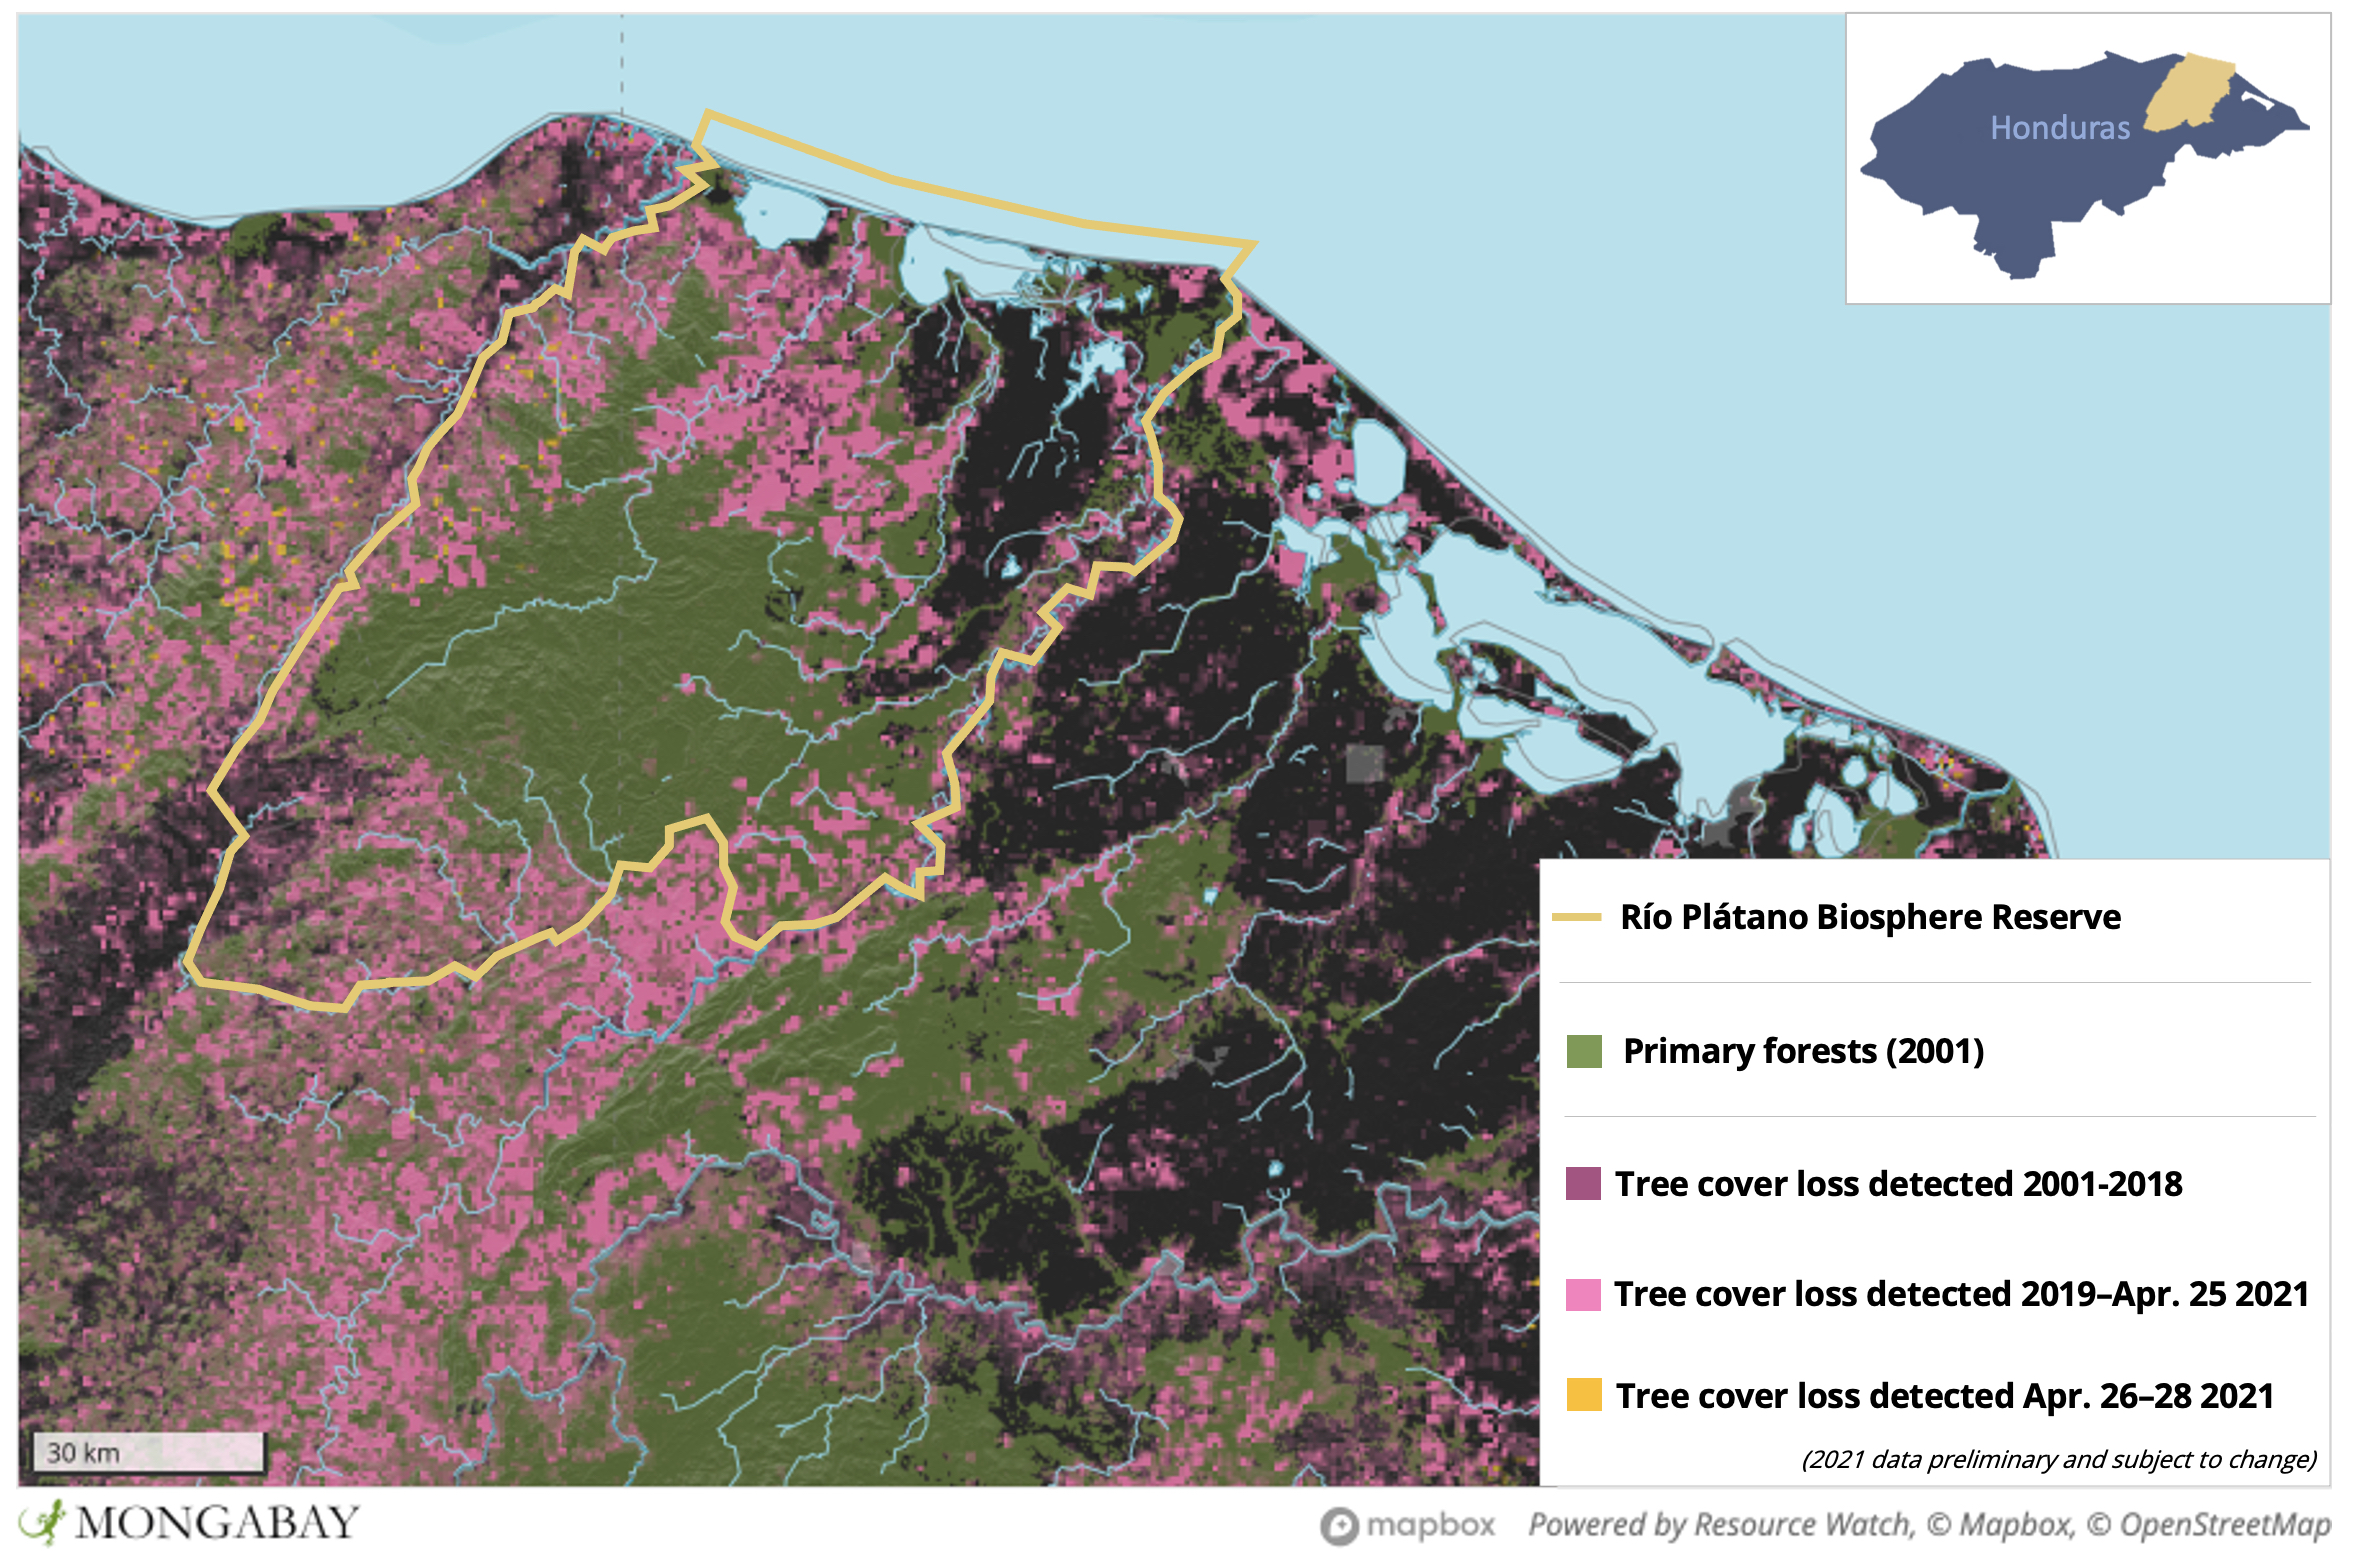 Satellite data show large areas of tree cover loss in and around Río Plátano Biosphere Reserve.Satellite data show large areas of tree cover loss in and around Río Plátano Biosphere Reserve.